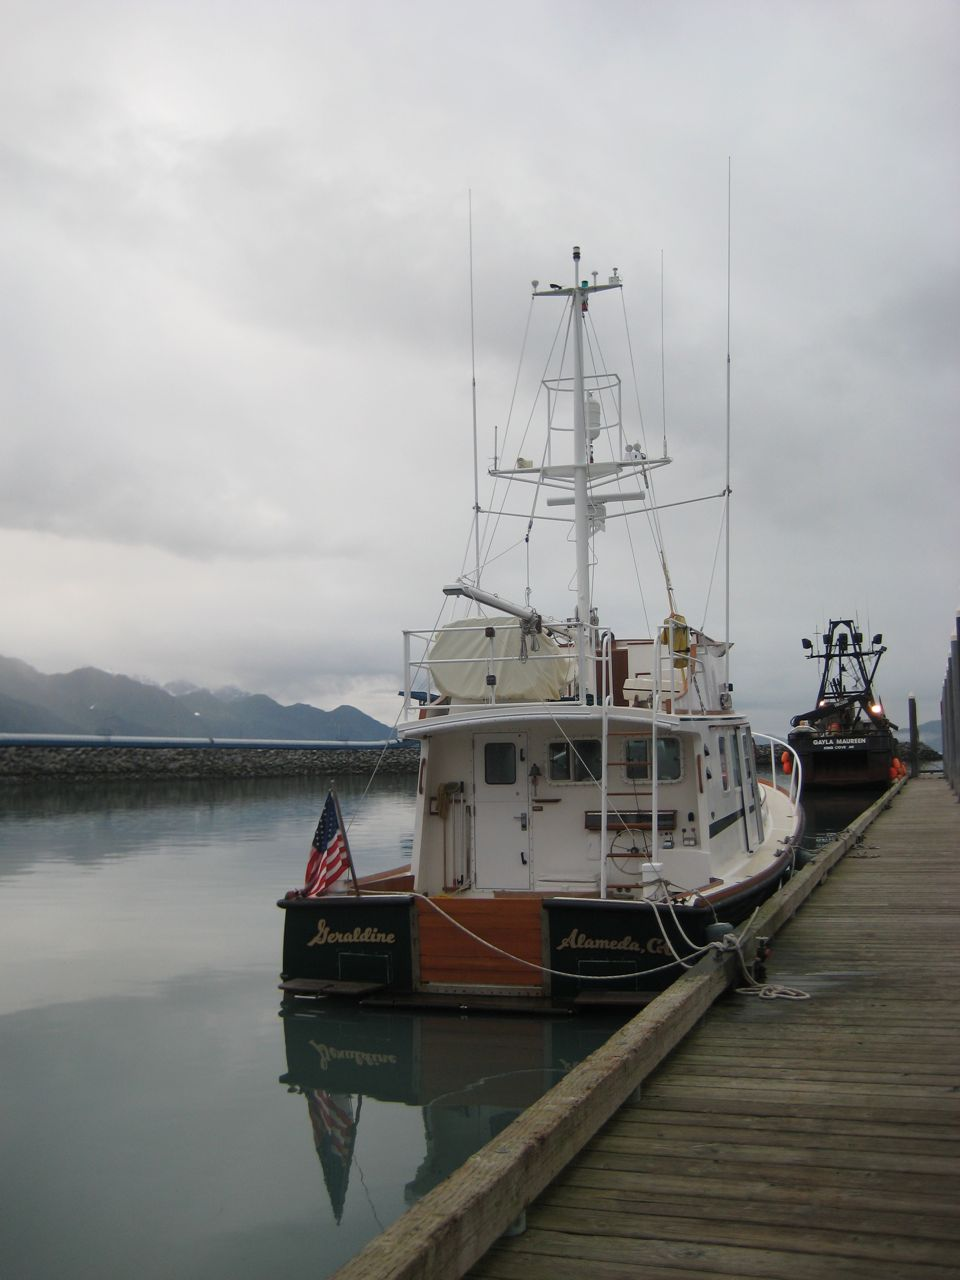 docked at Seward